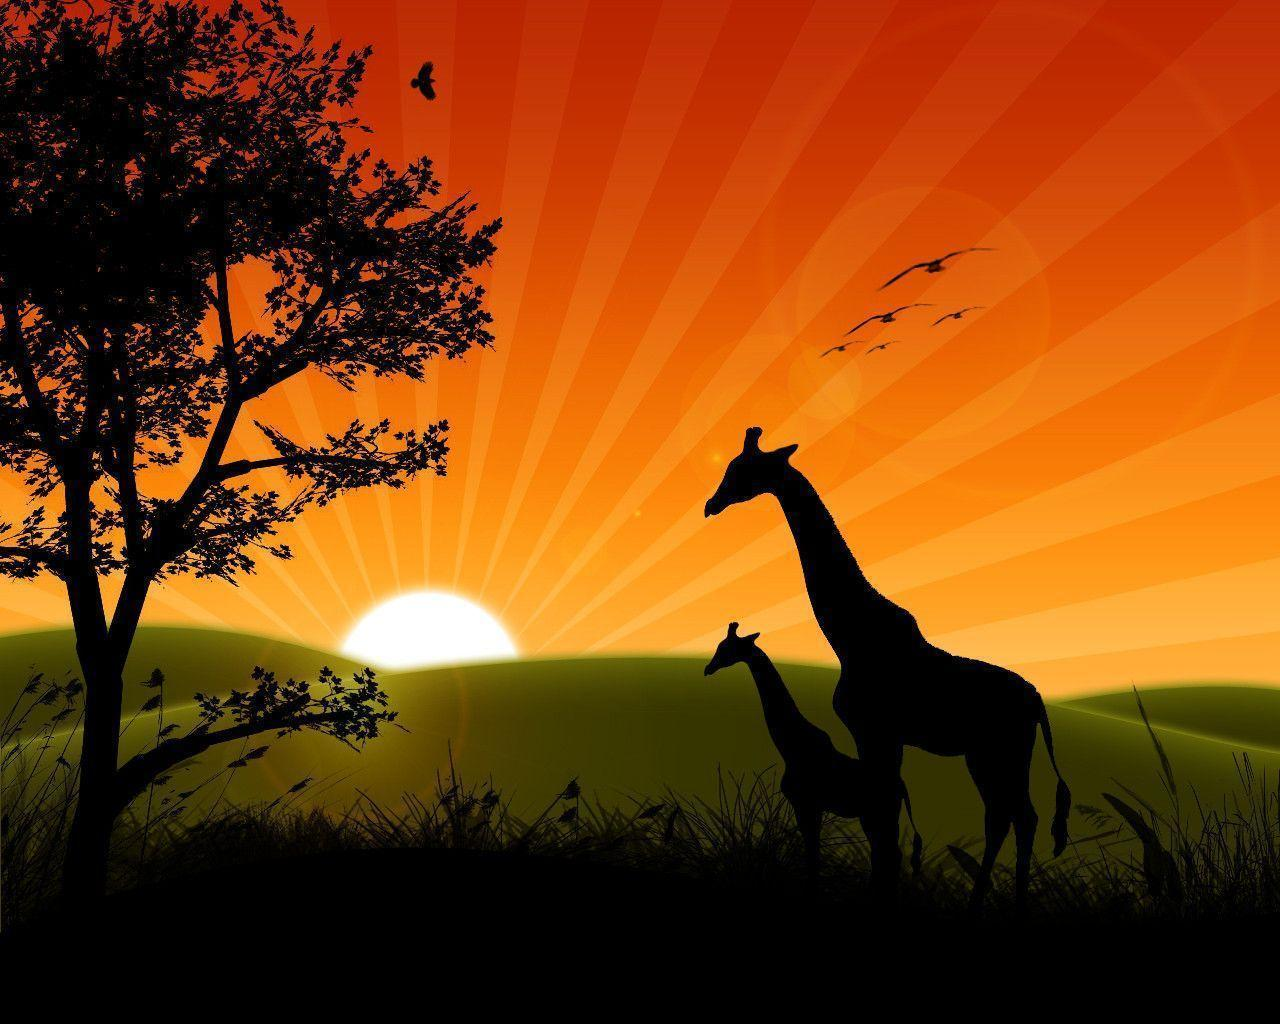 Sunrise Wallpaper Desktop | coolstyle wallpapers.